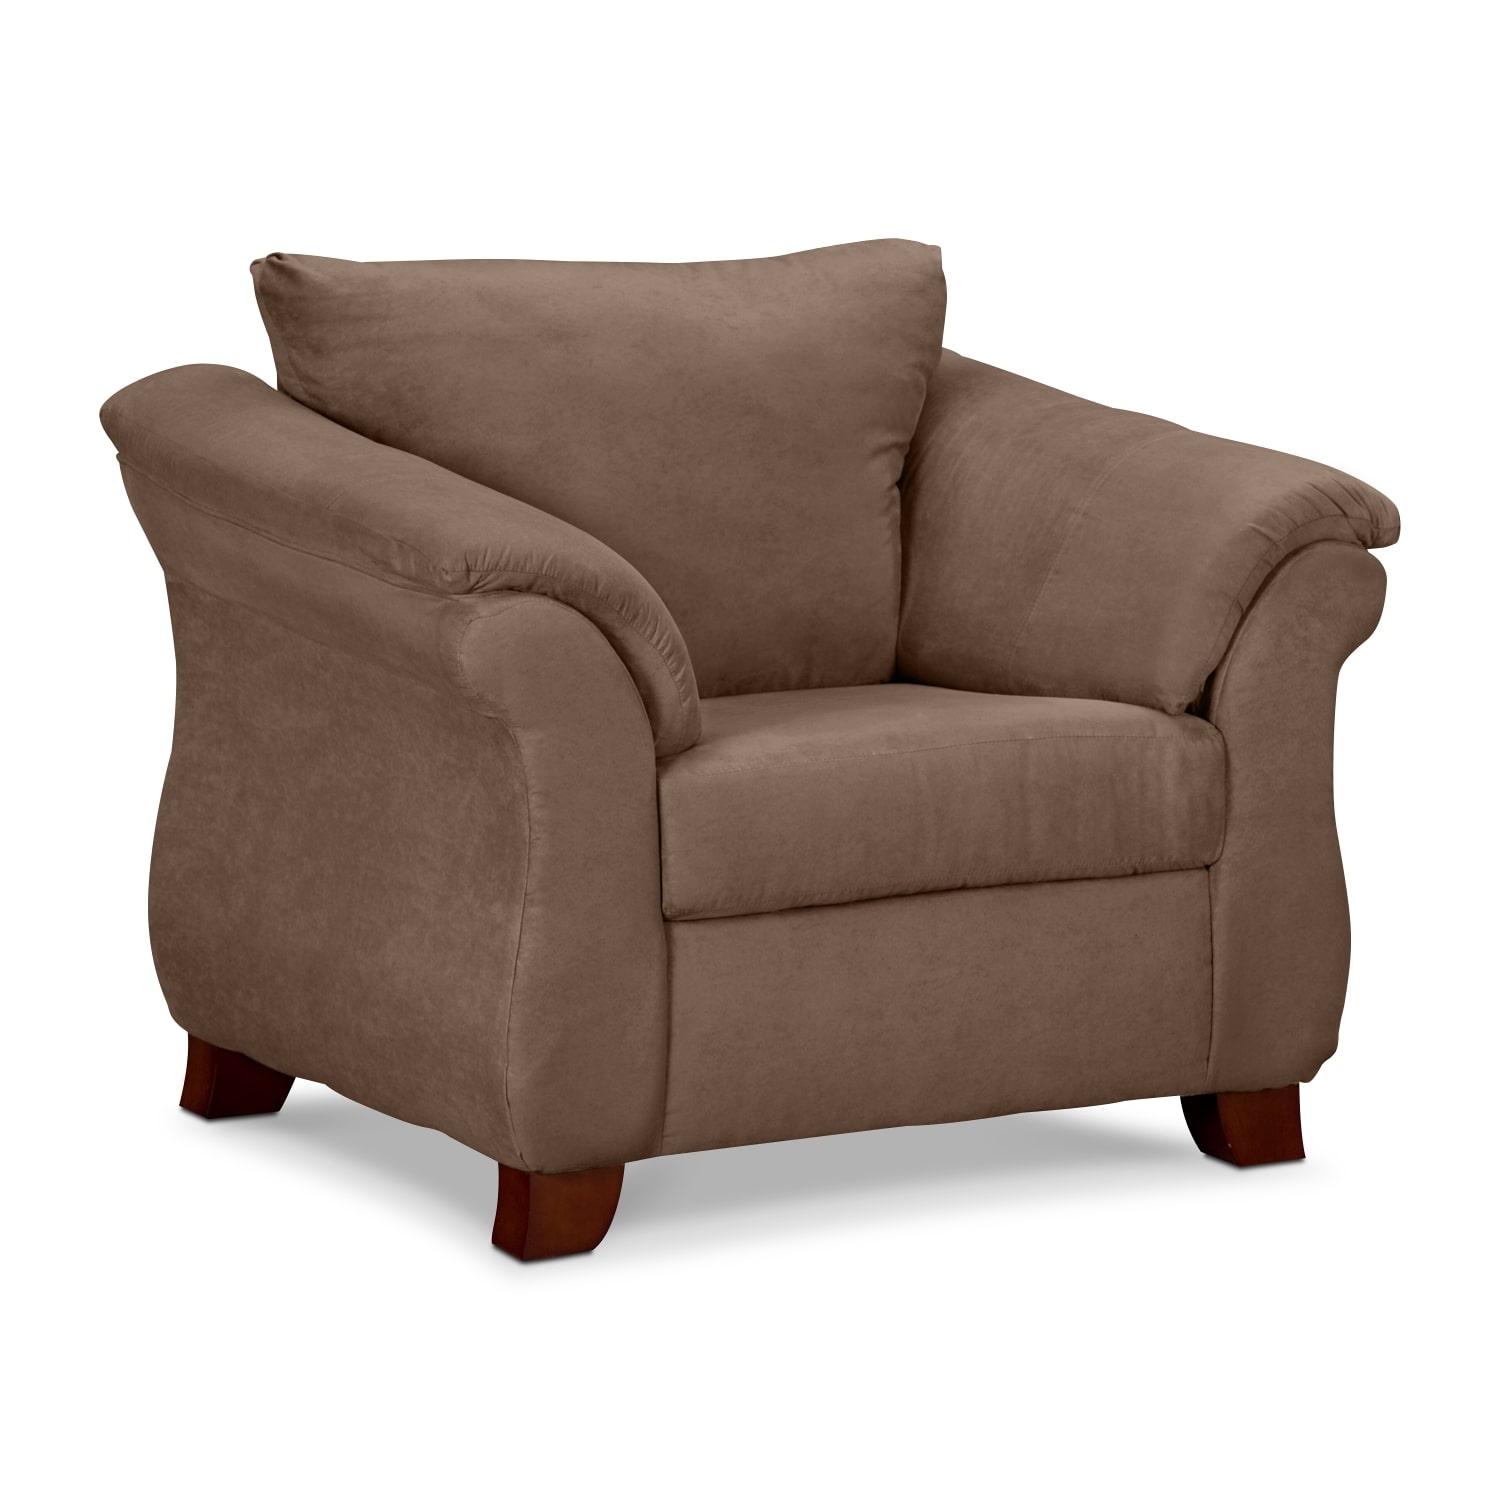 Adrian Taupe Upholstery Chair Value City Furniture